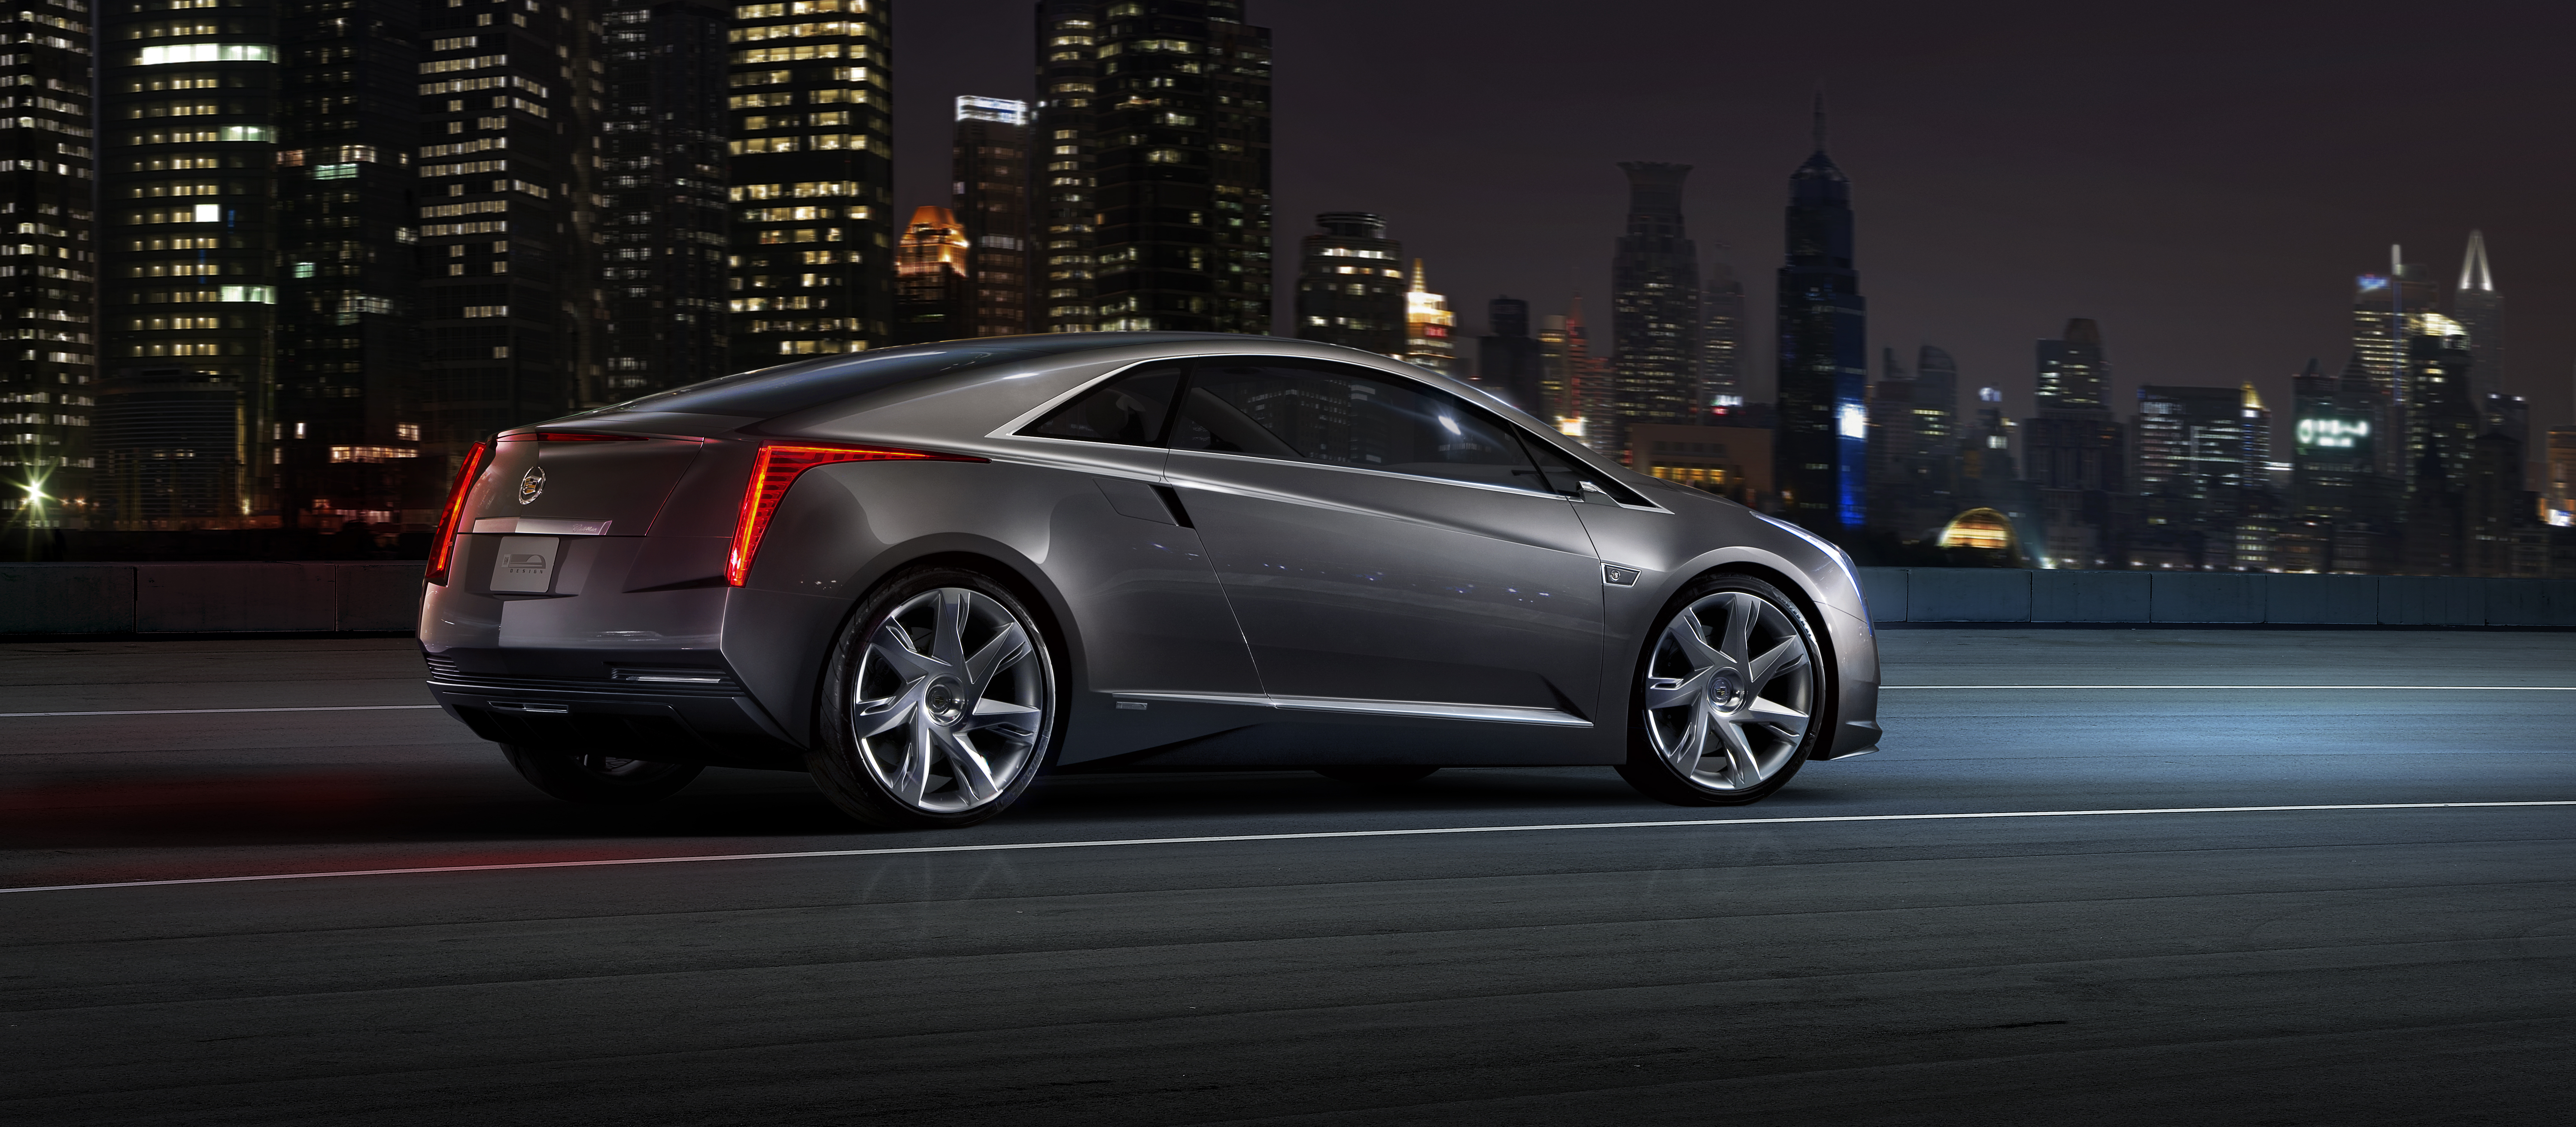 Meet The Cadillac Elr General Motors 39 Luxury Extended